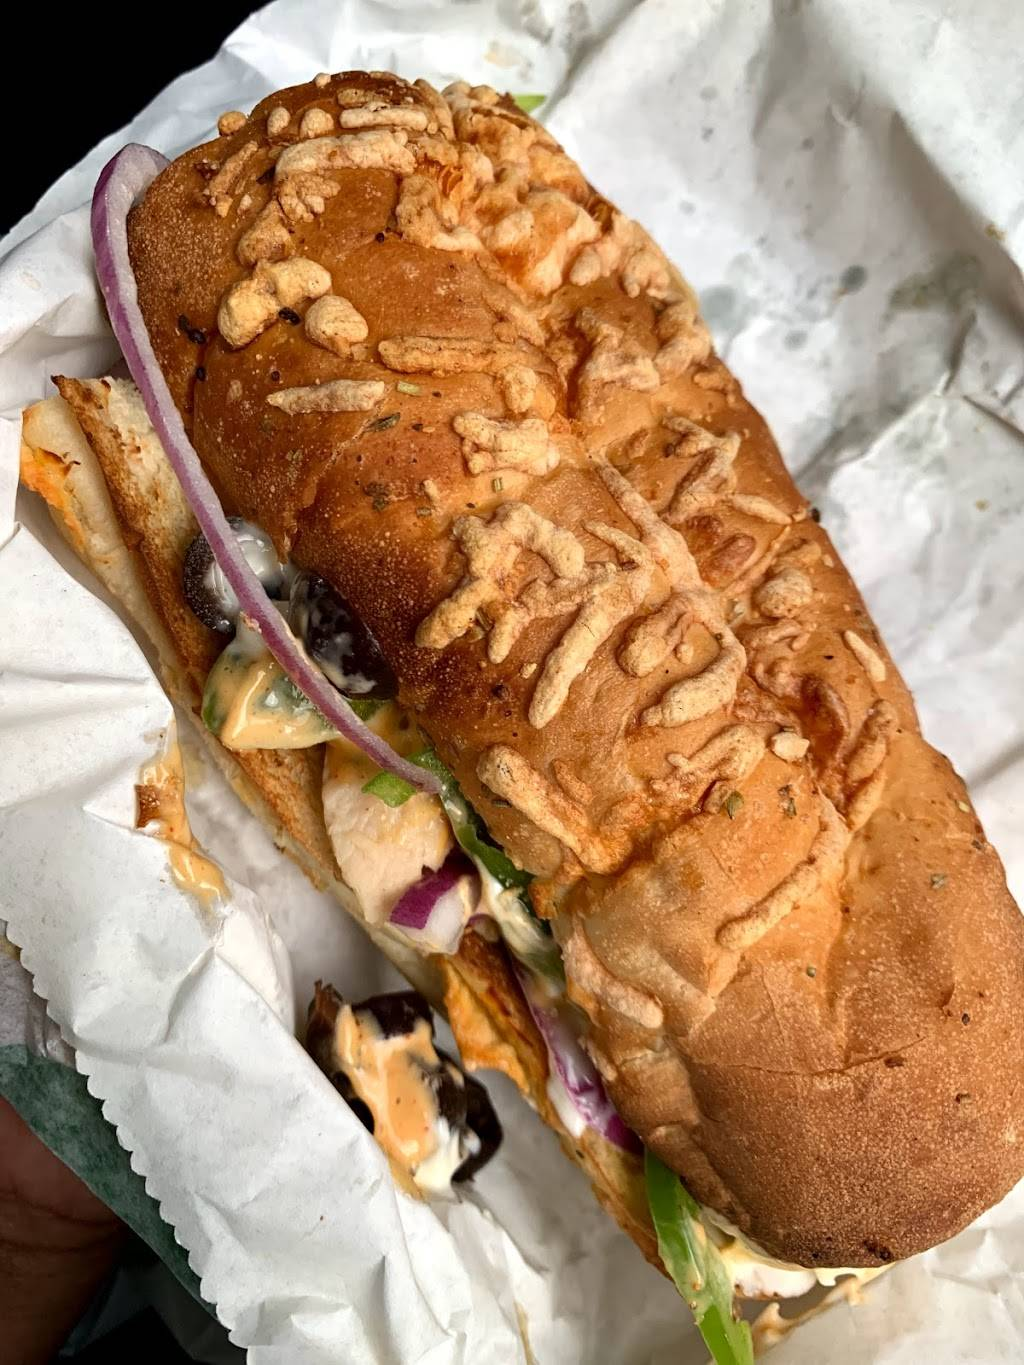 Subway   restaurant   440 West Highway Ave, Woodhull, IL 61490, USA   3093347827 OR +1 309-334-7827